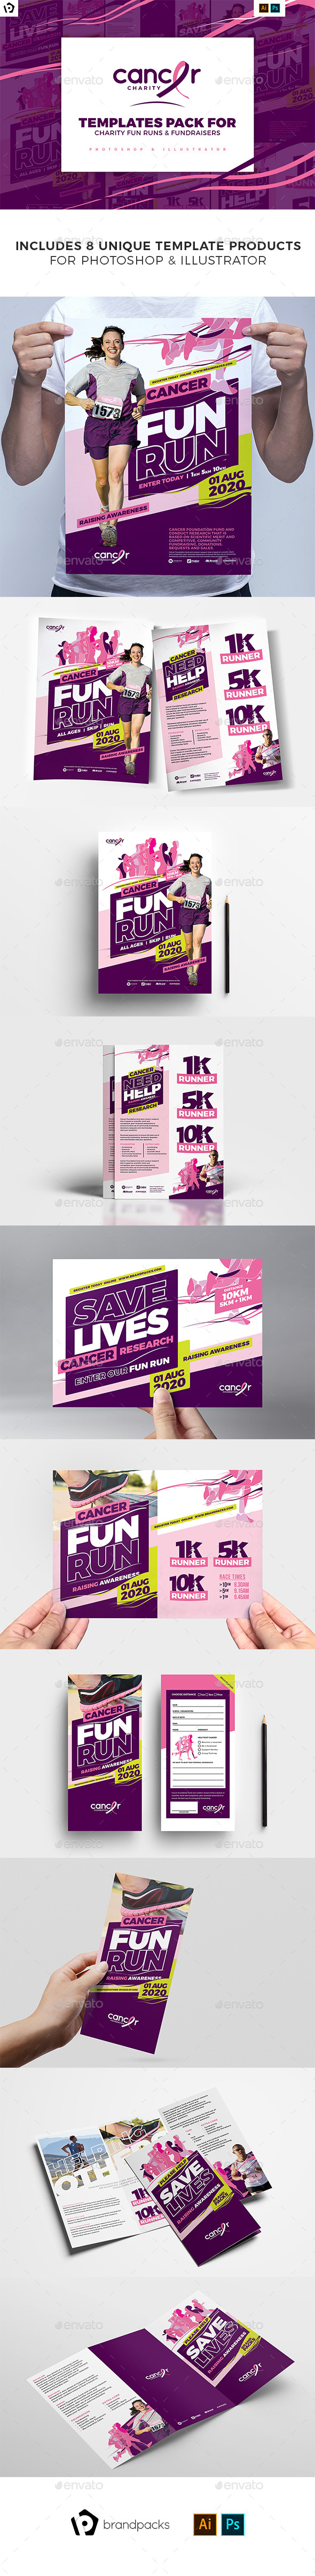 Cancer Benefit Templates Pack - Sports Events